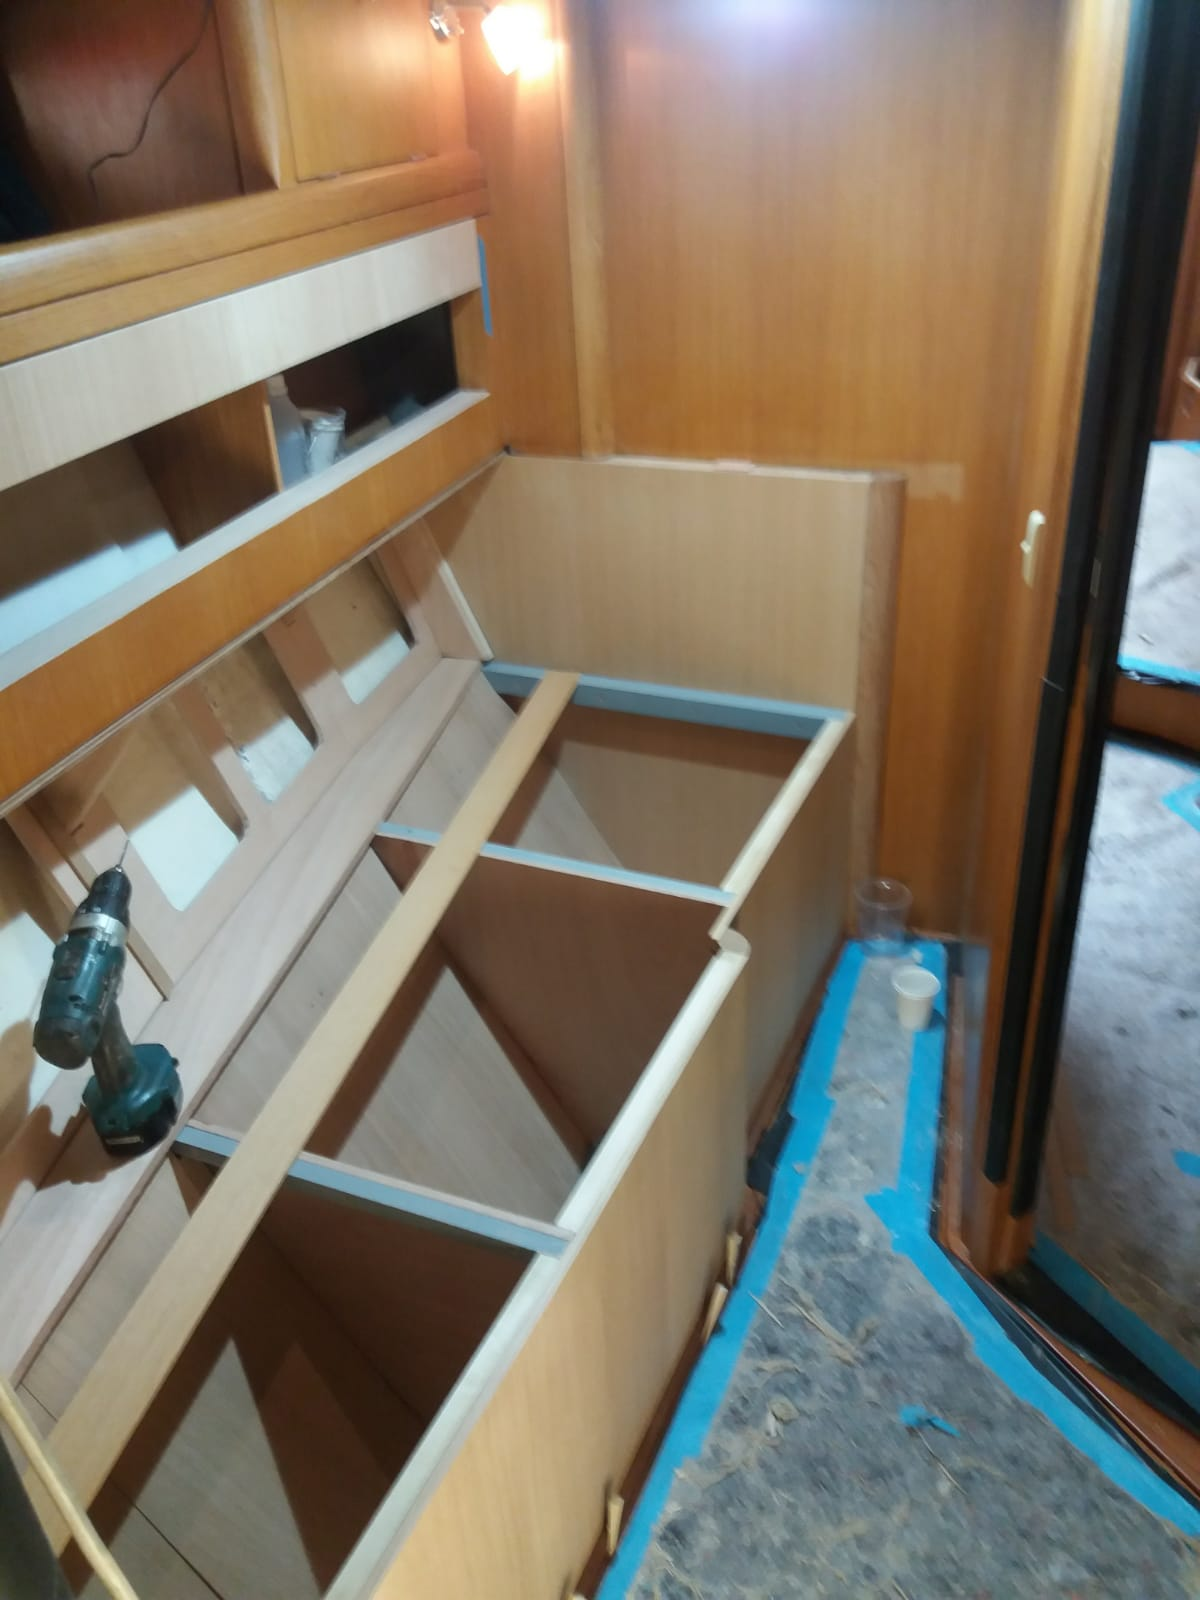 2018 06 S-board Bunks Progress 01